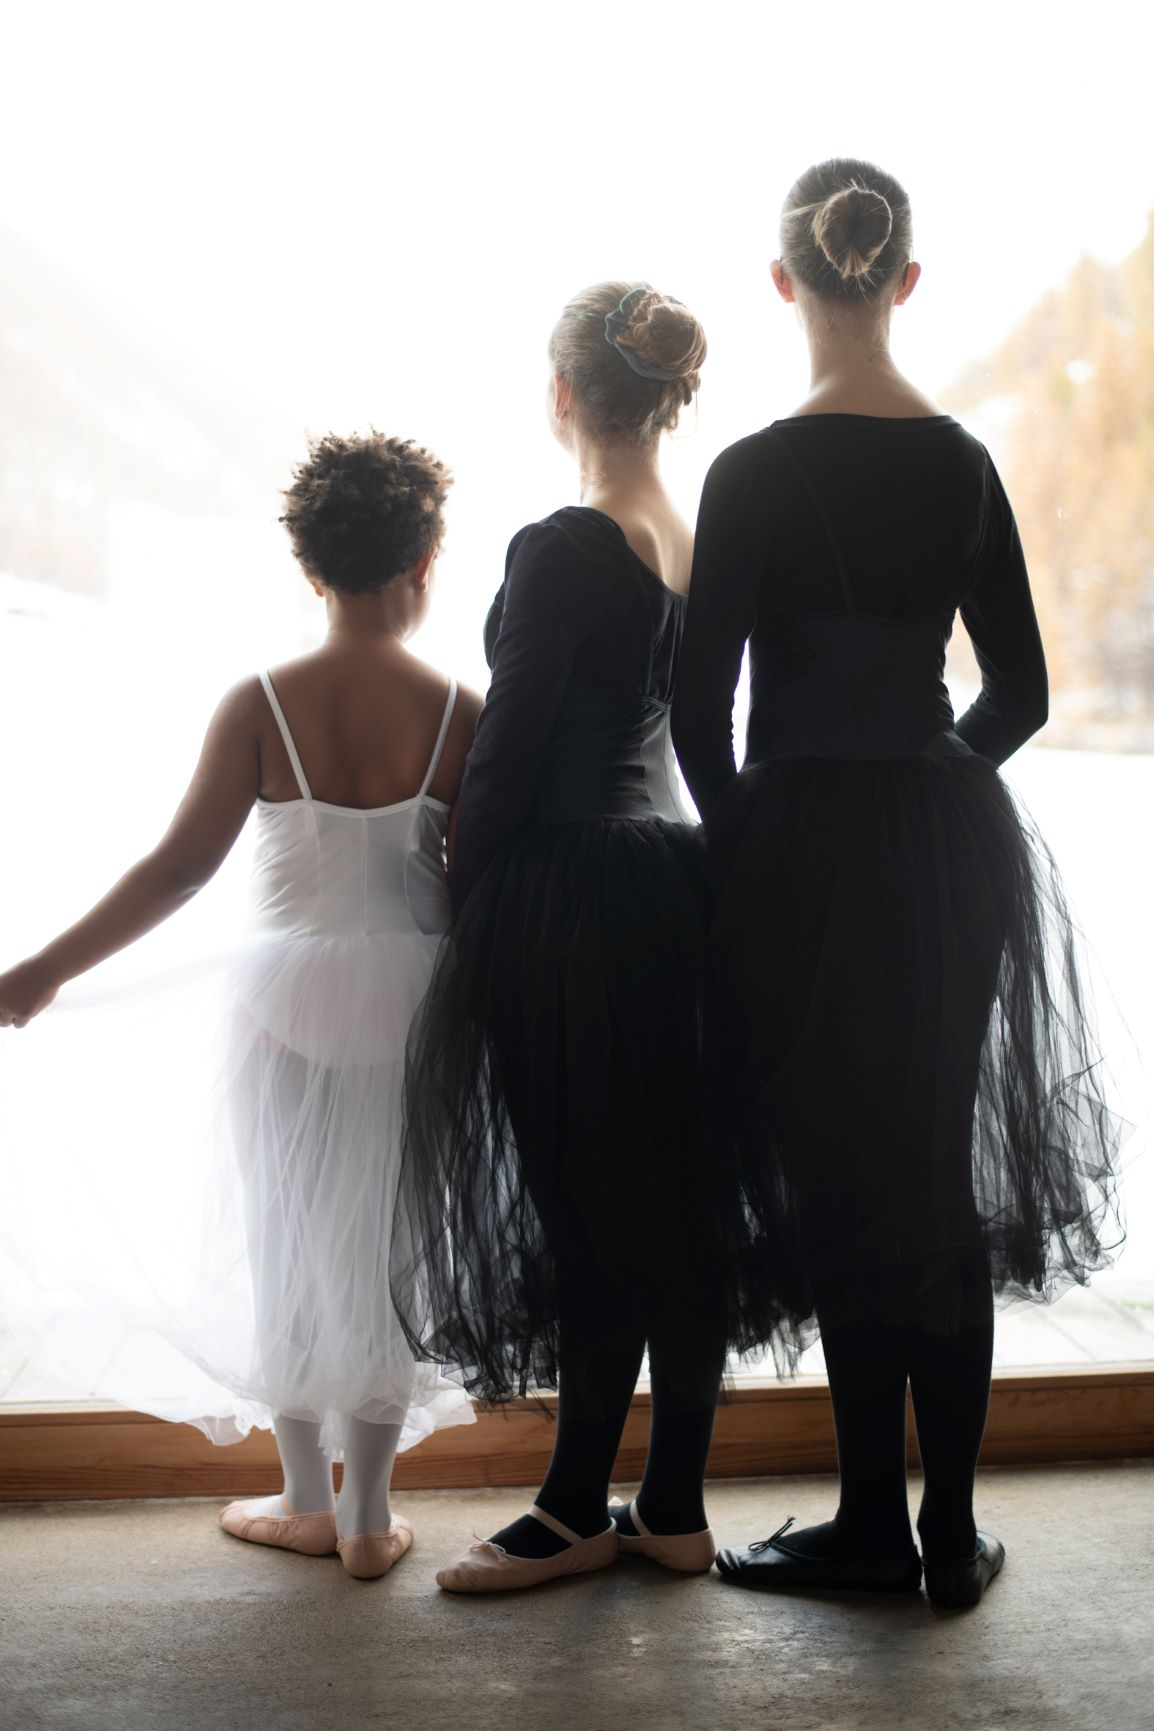 Ballerinas from behind 2 - Photo © Daniela Brugger